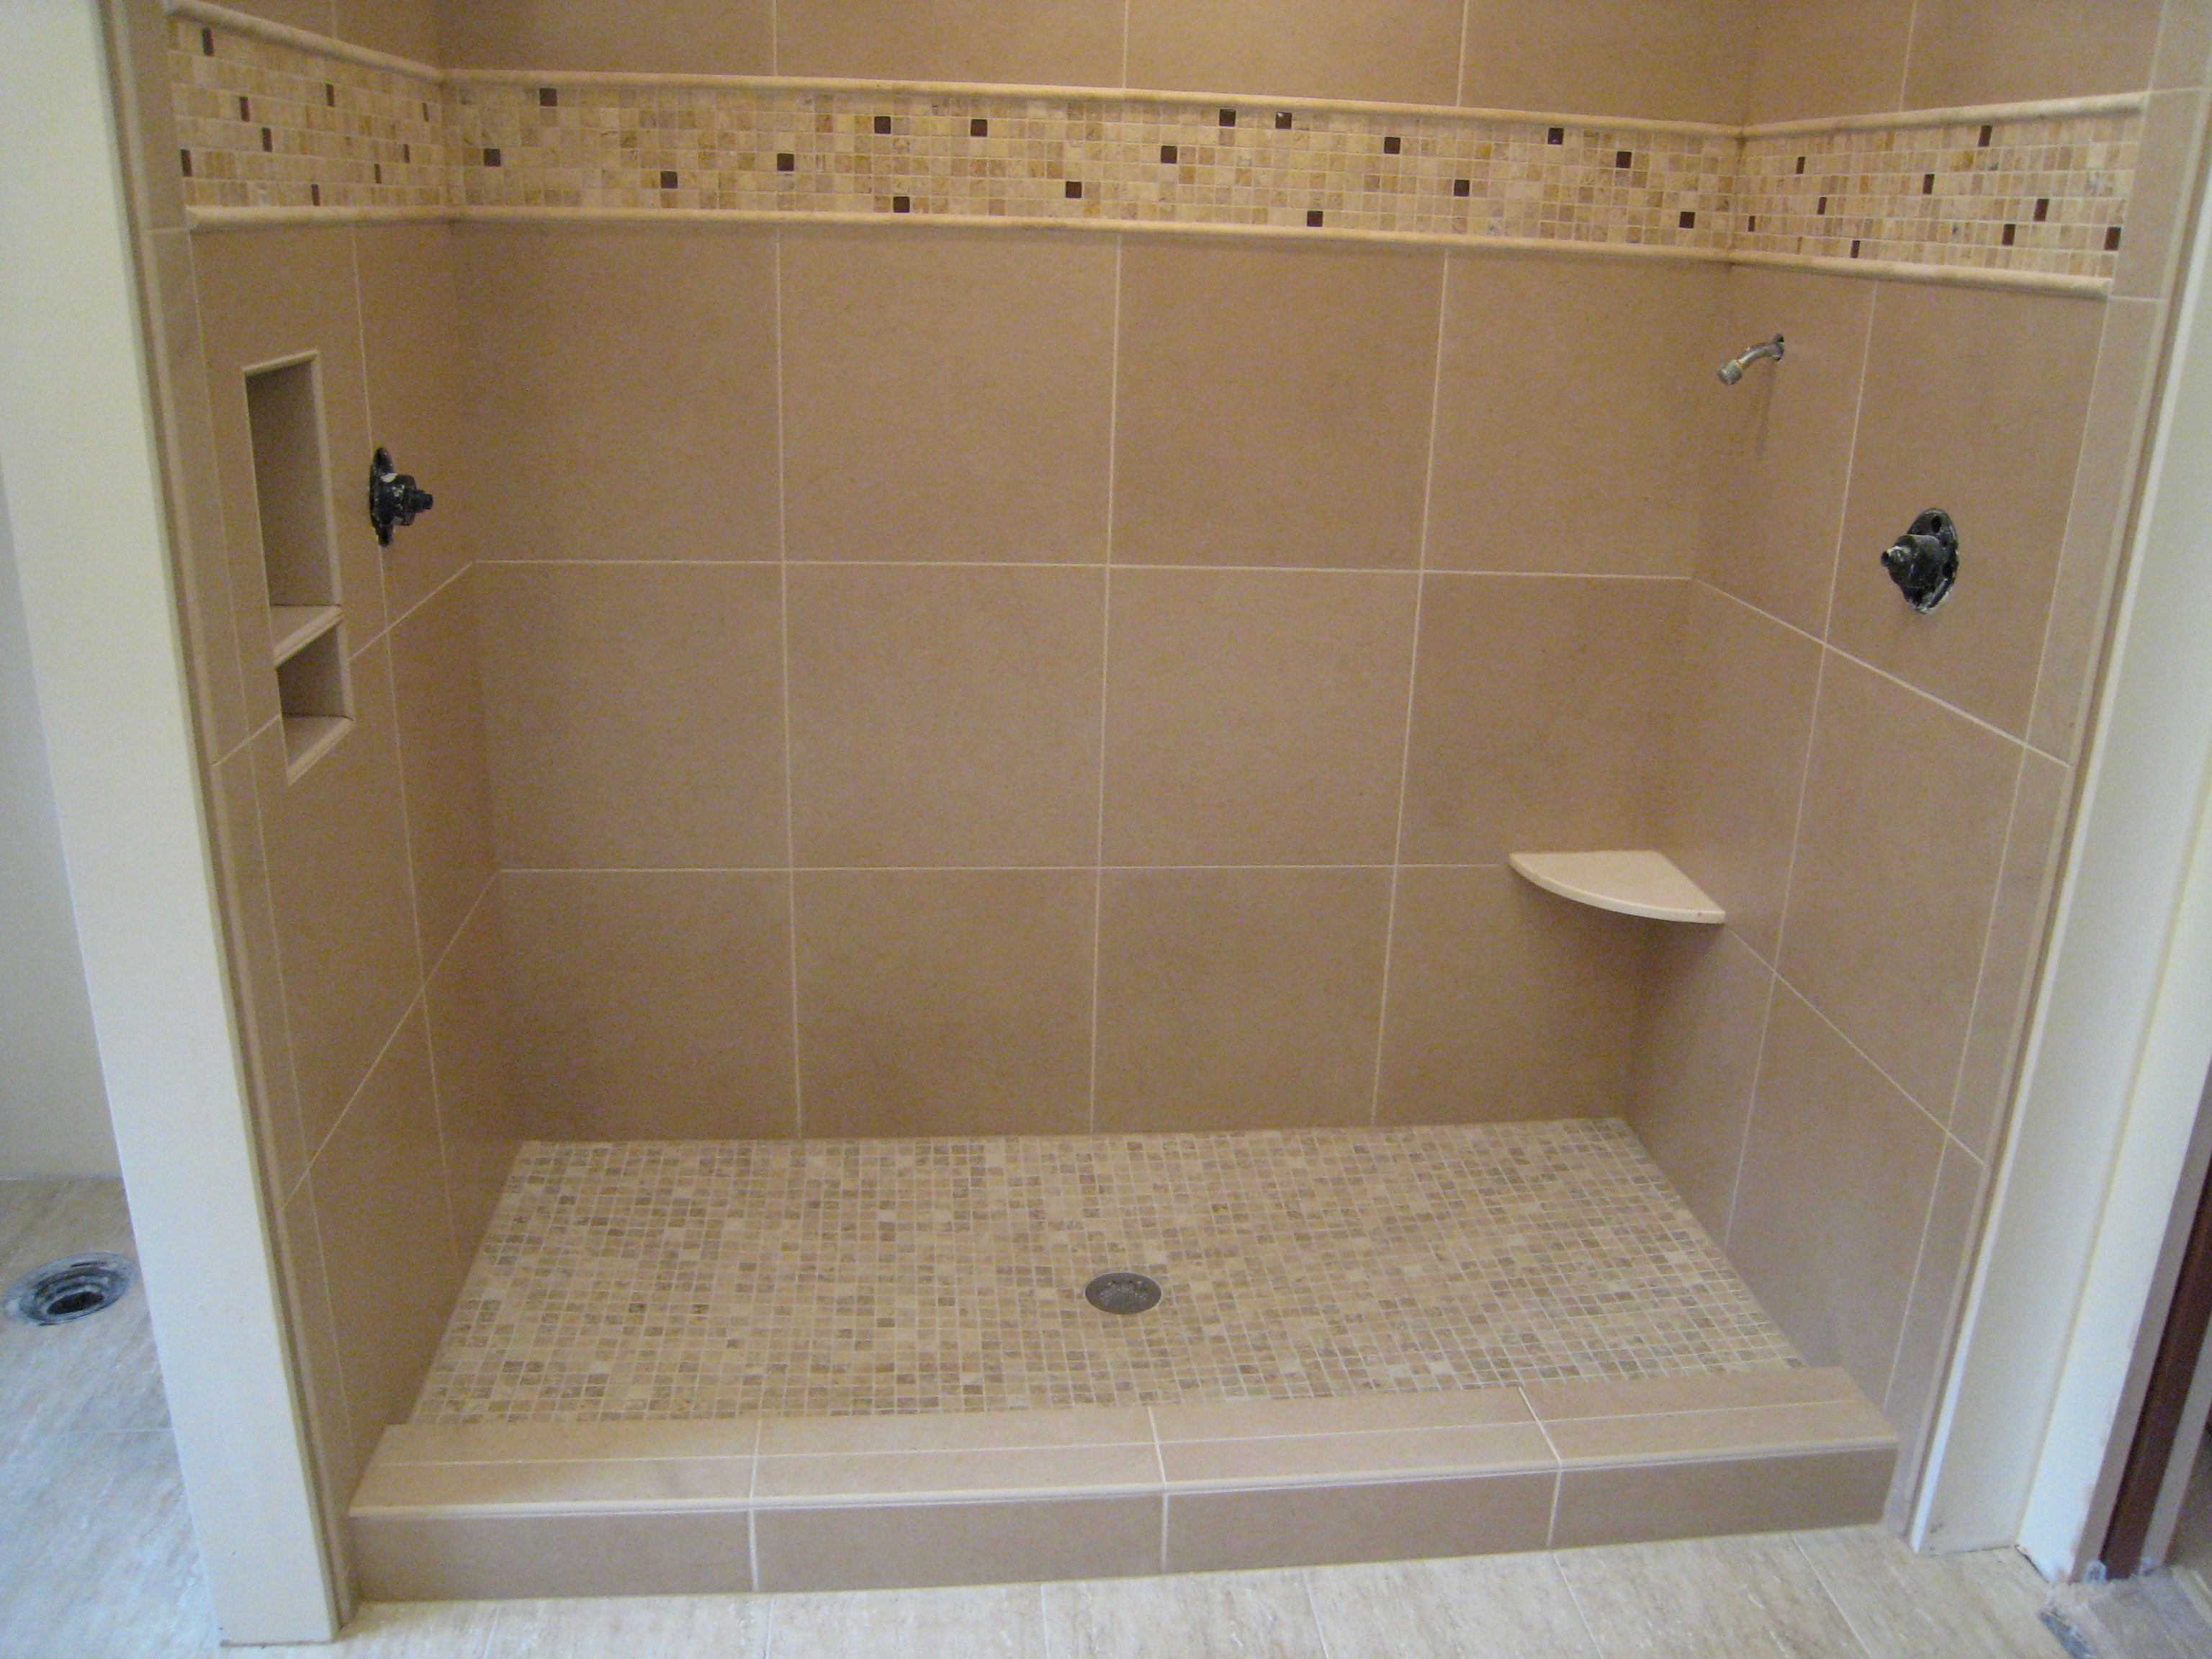 Dmj tile services renton wa 98057 angie 39 s list for D i y bathroom installations